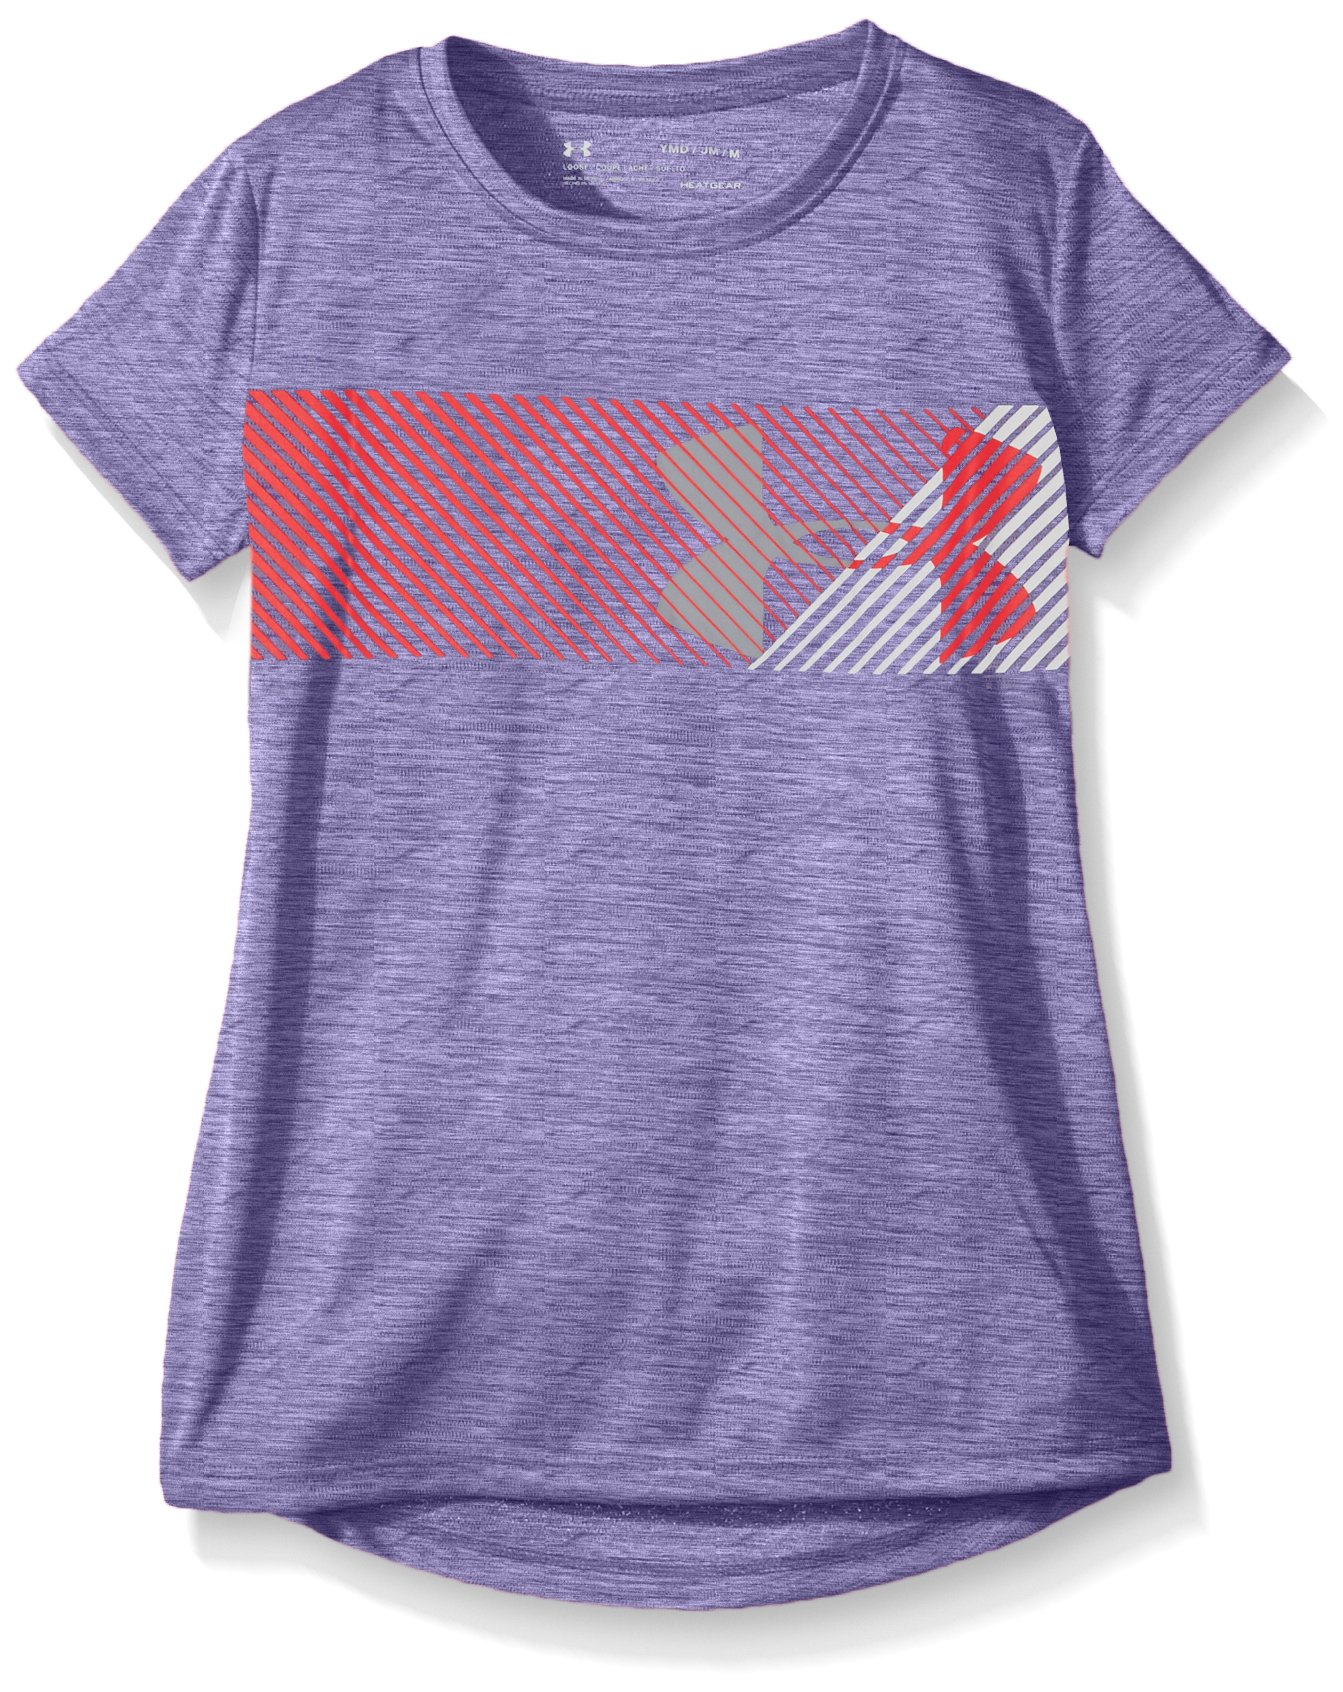 Under Armour Girls Hybrid Big Logo Tee, Constellation Purple /White, Youth Small